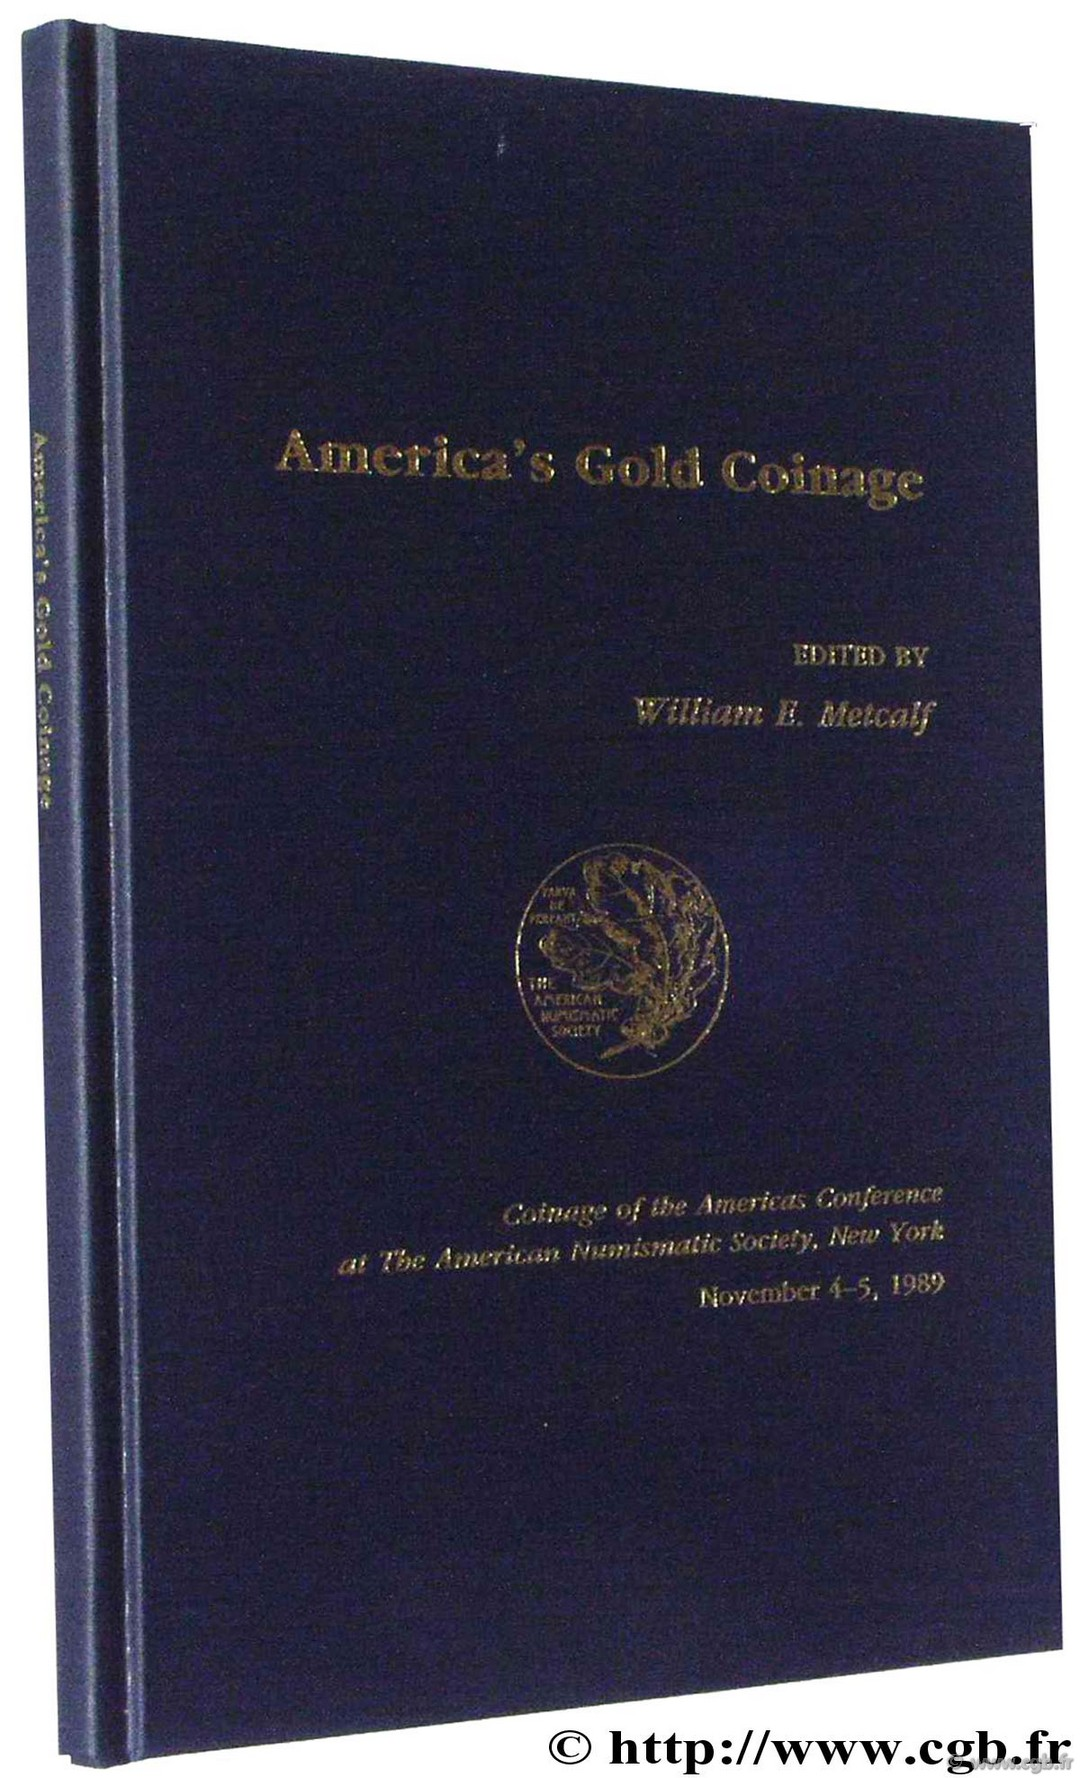 America s gold coinage, coinage of the americas conférence at the American Numismatic Society, New York November 4-5, 1989